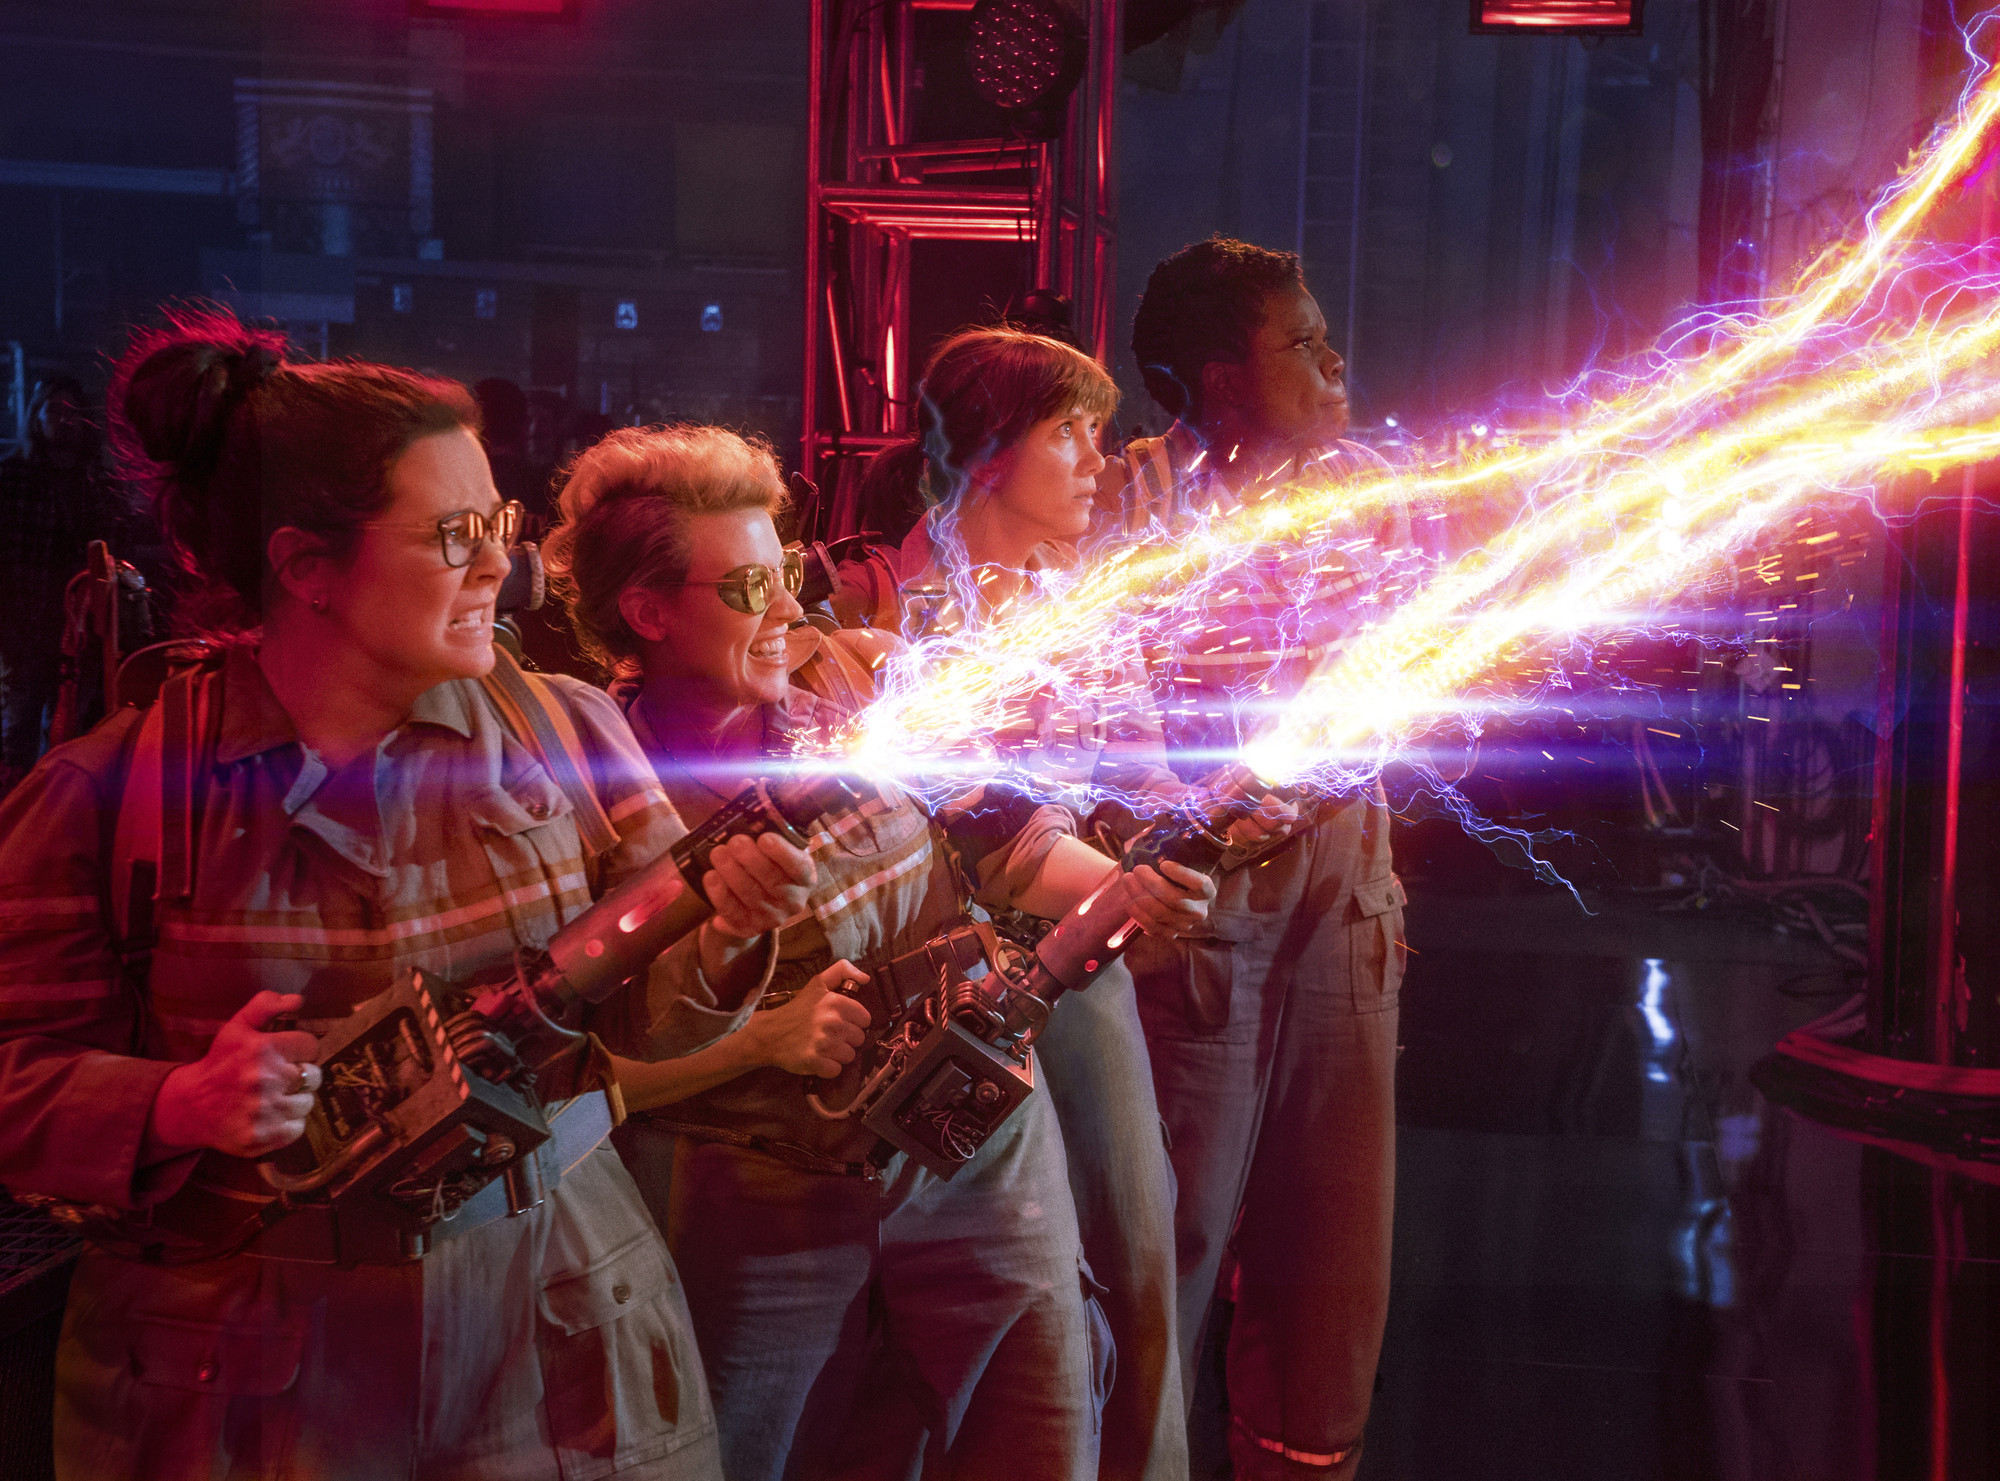 2000x1481 Review: 'Ghostbusters' legacy is in good hands with new all-female cast